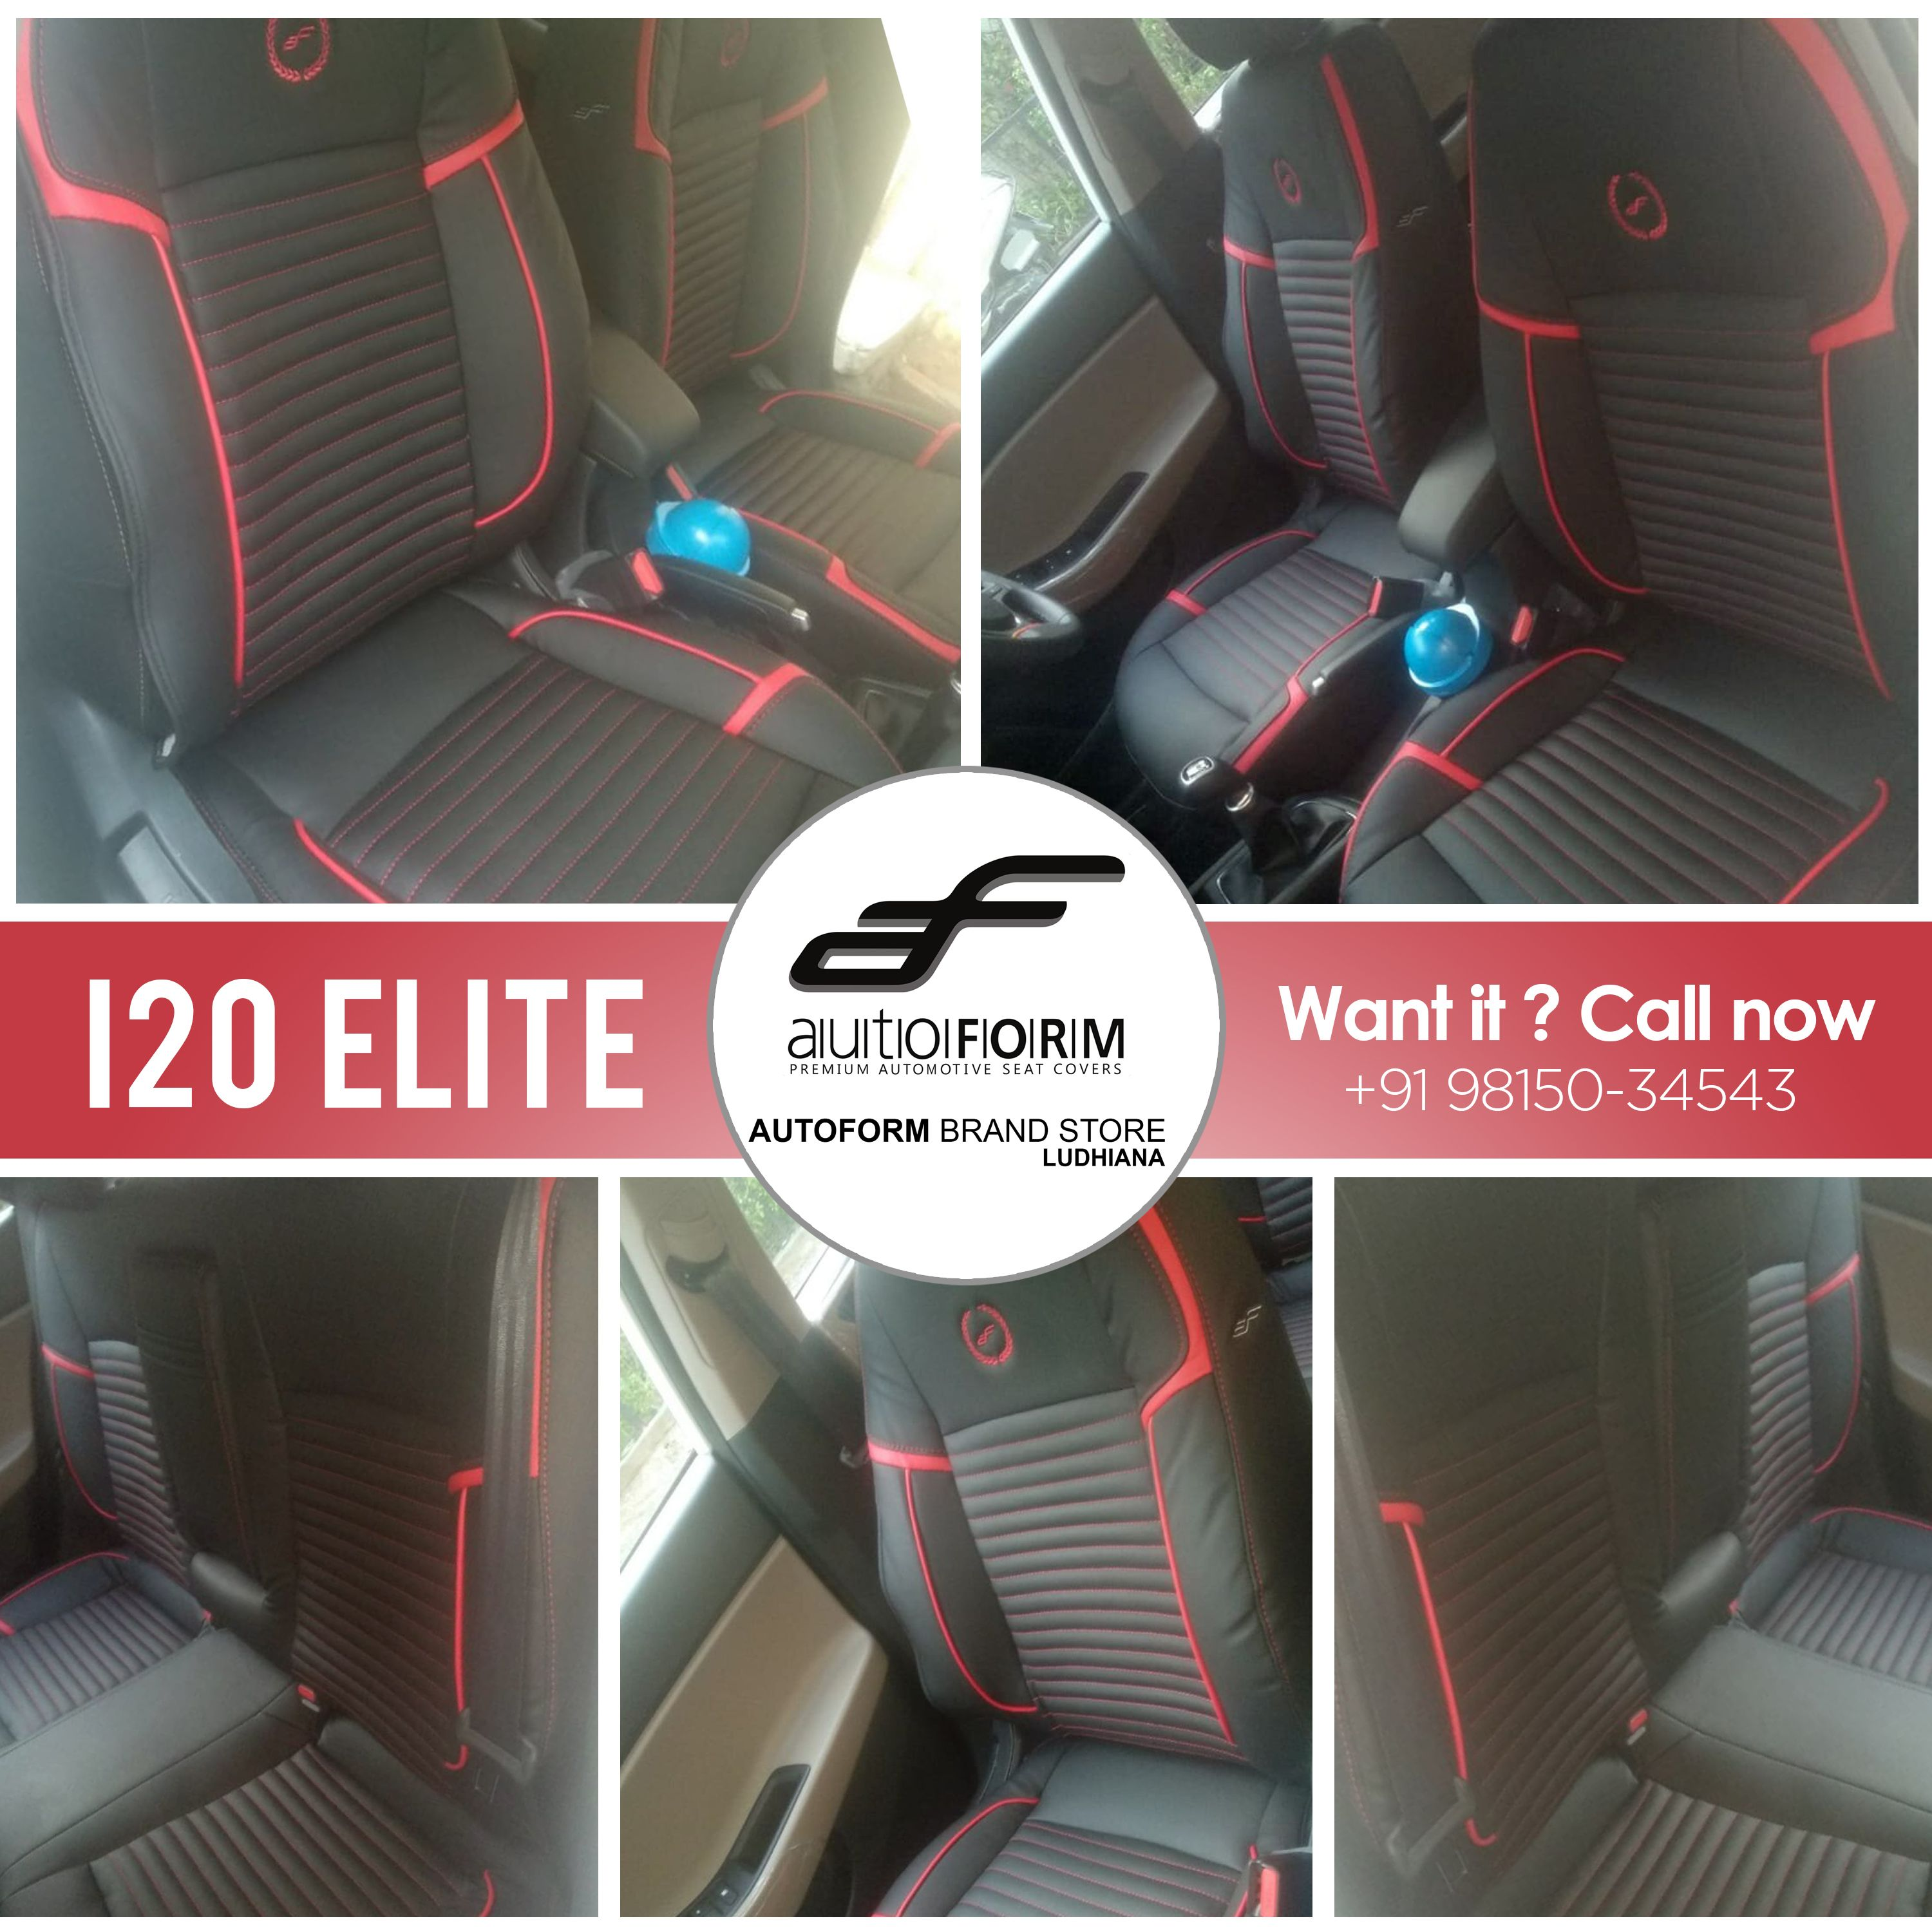 Hyundai I20 Elite Enlightened Its Interior With Riviera Series Seat Covers In The Red Black Combination Branded Seat Cov Car Detailing Ludhiana Brand Store